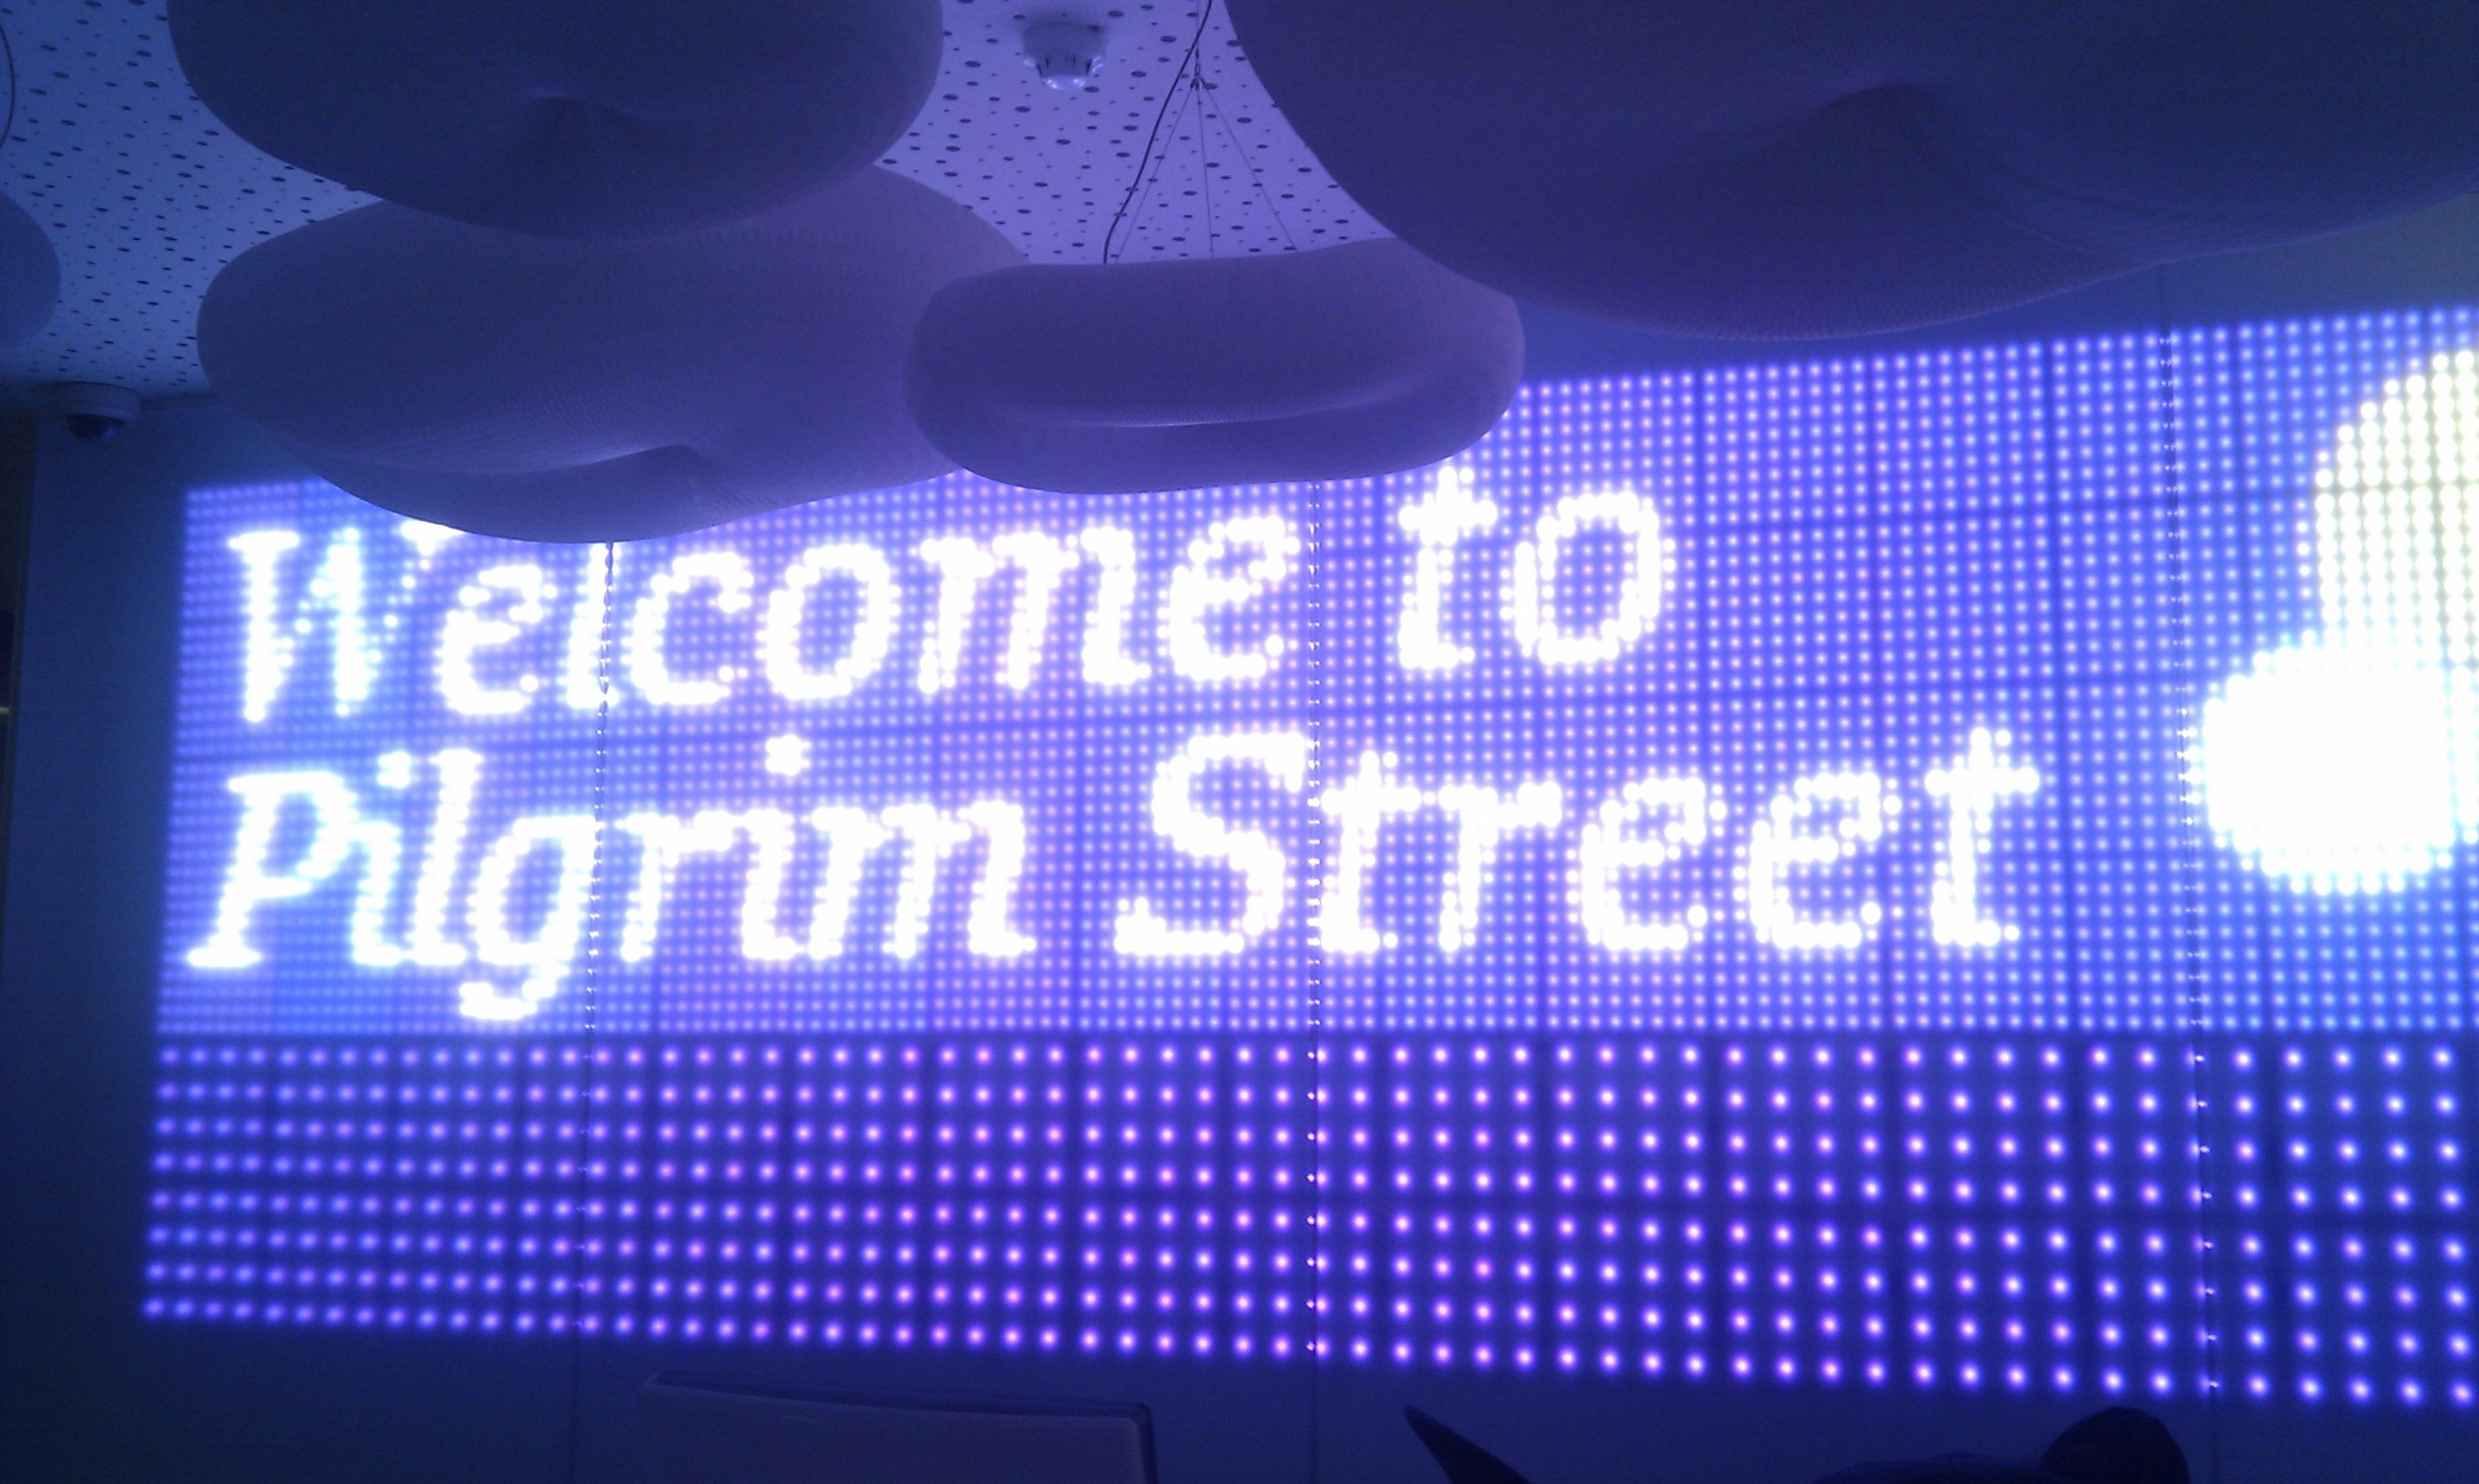 welcome to pilgrim street